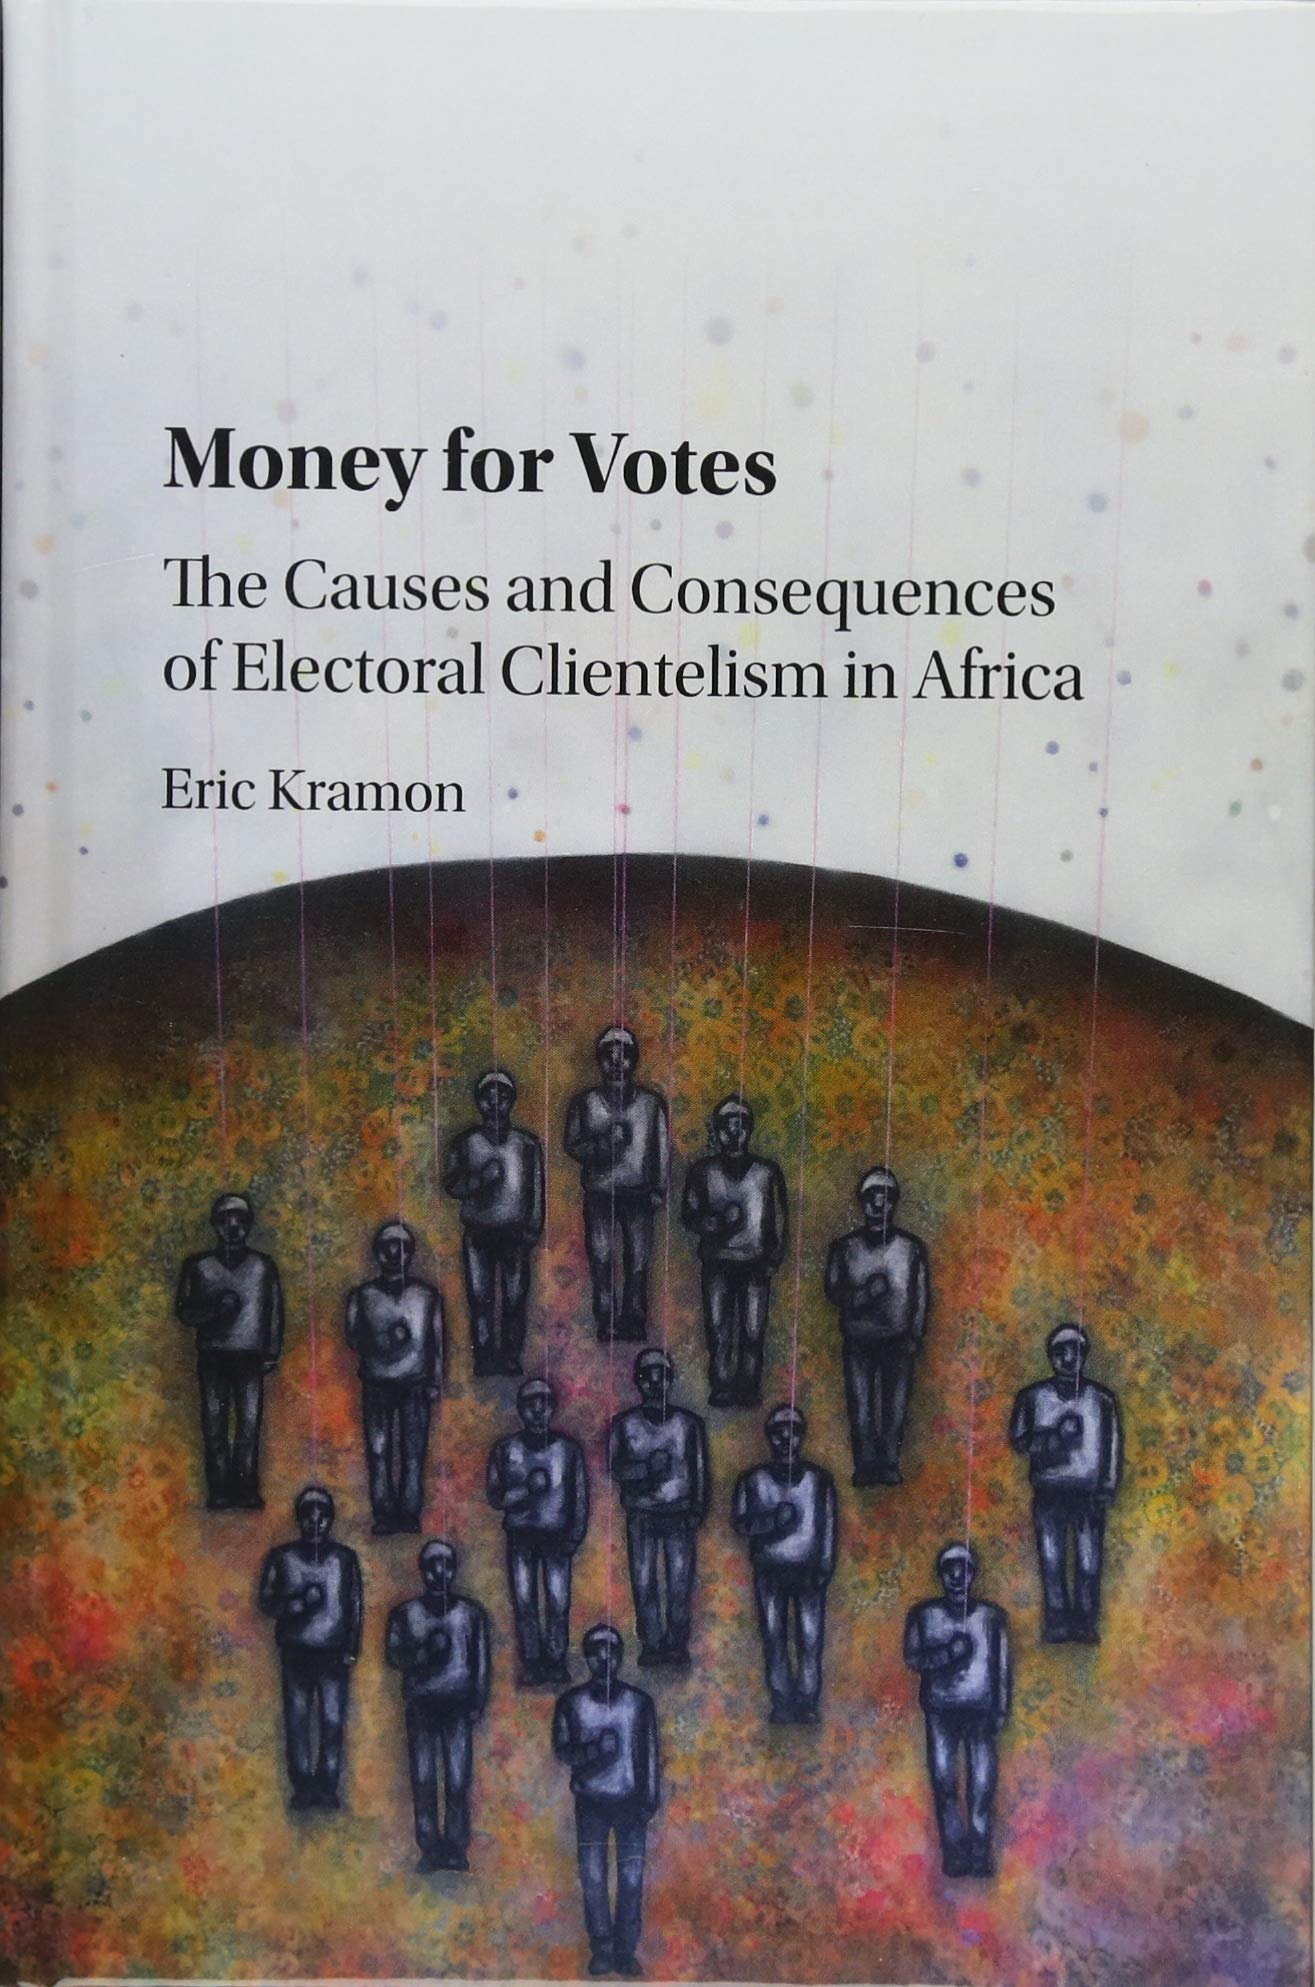 Money for Votes: The Causes and Consequences of Electoral Clientelism in Africa ebook